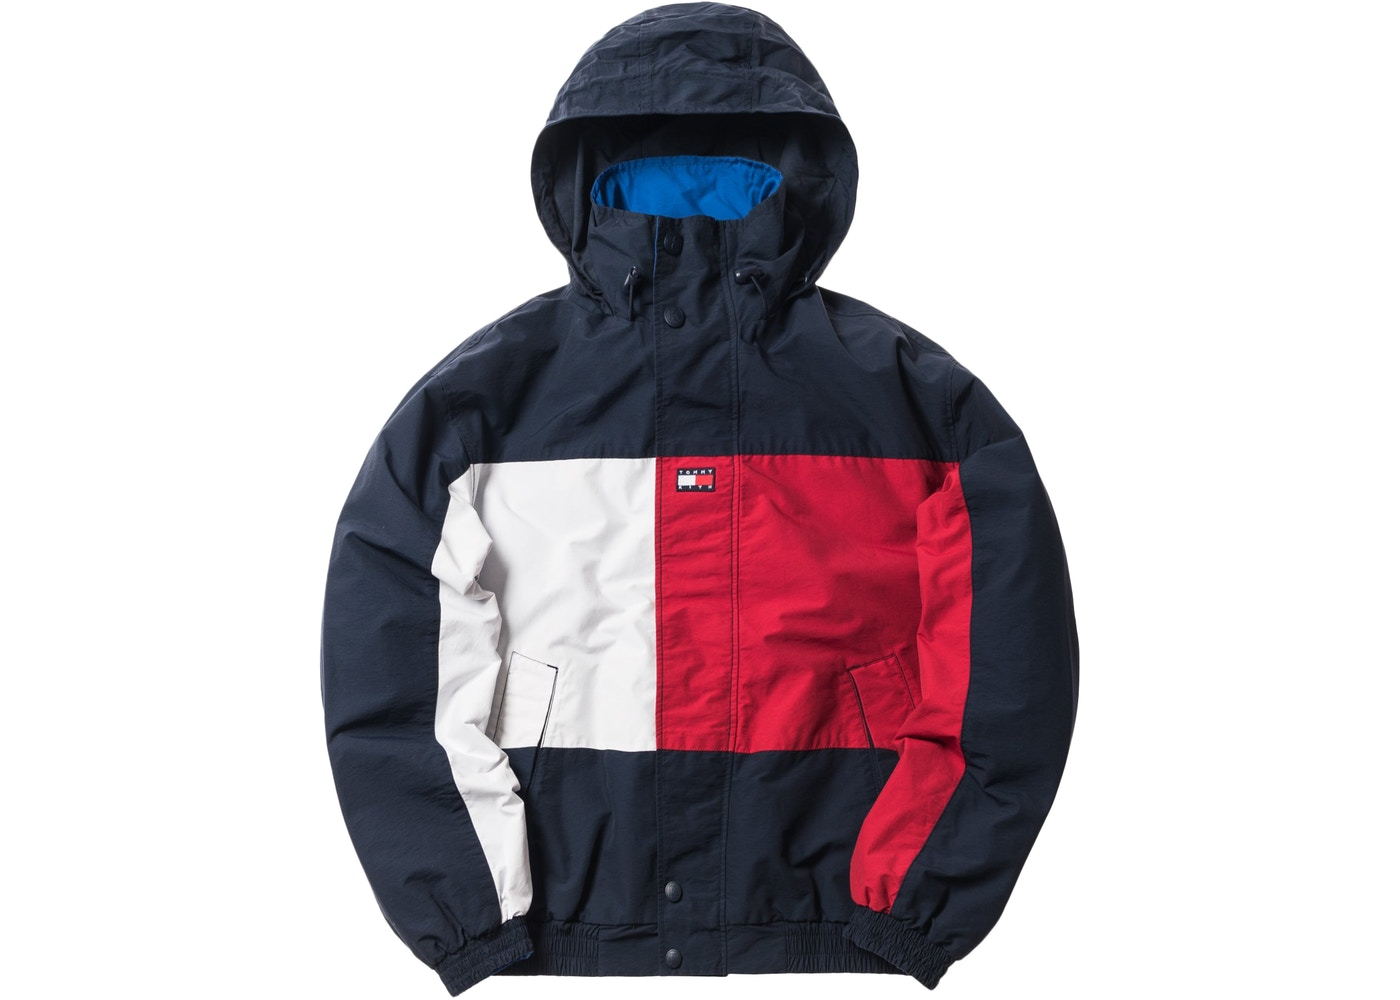 e226b354 Kith x Tommy Hilfiger Reversible Colorblack Jacket Navy/Blue - FW18